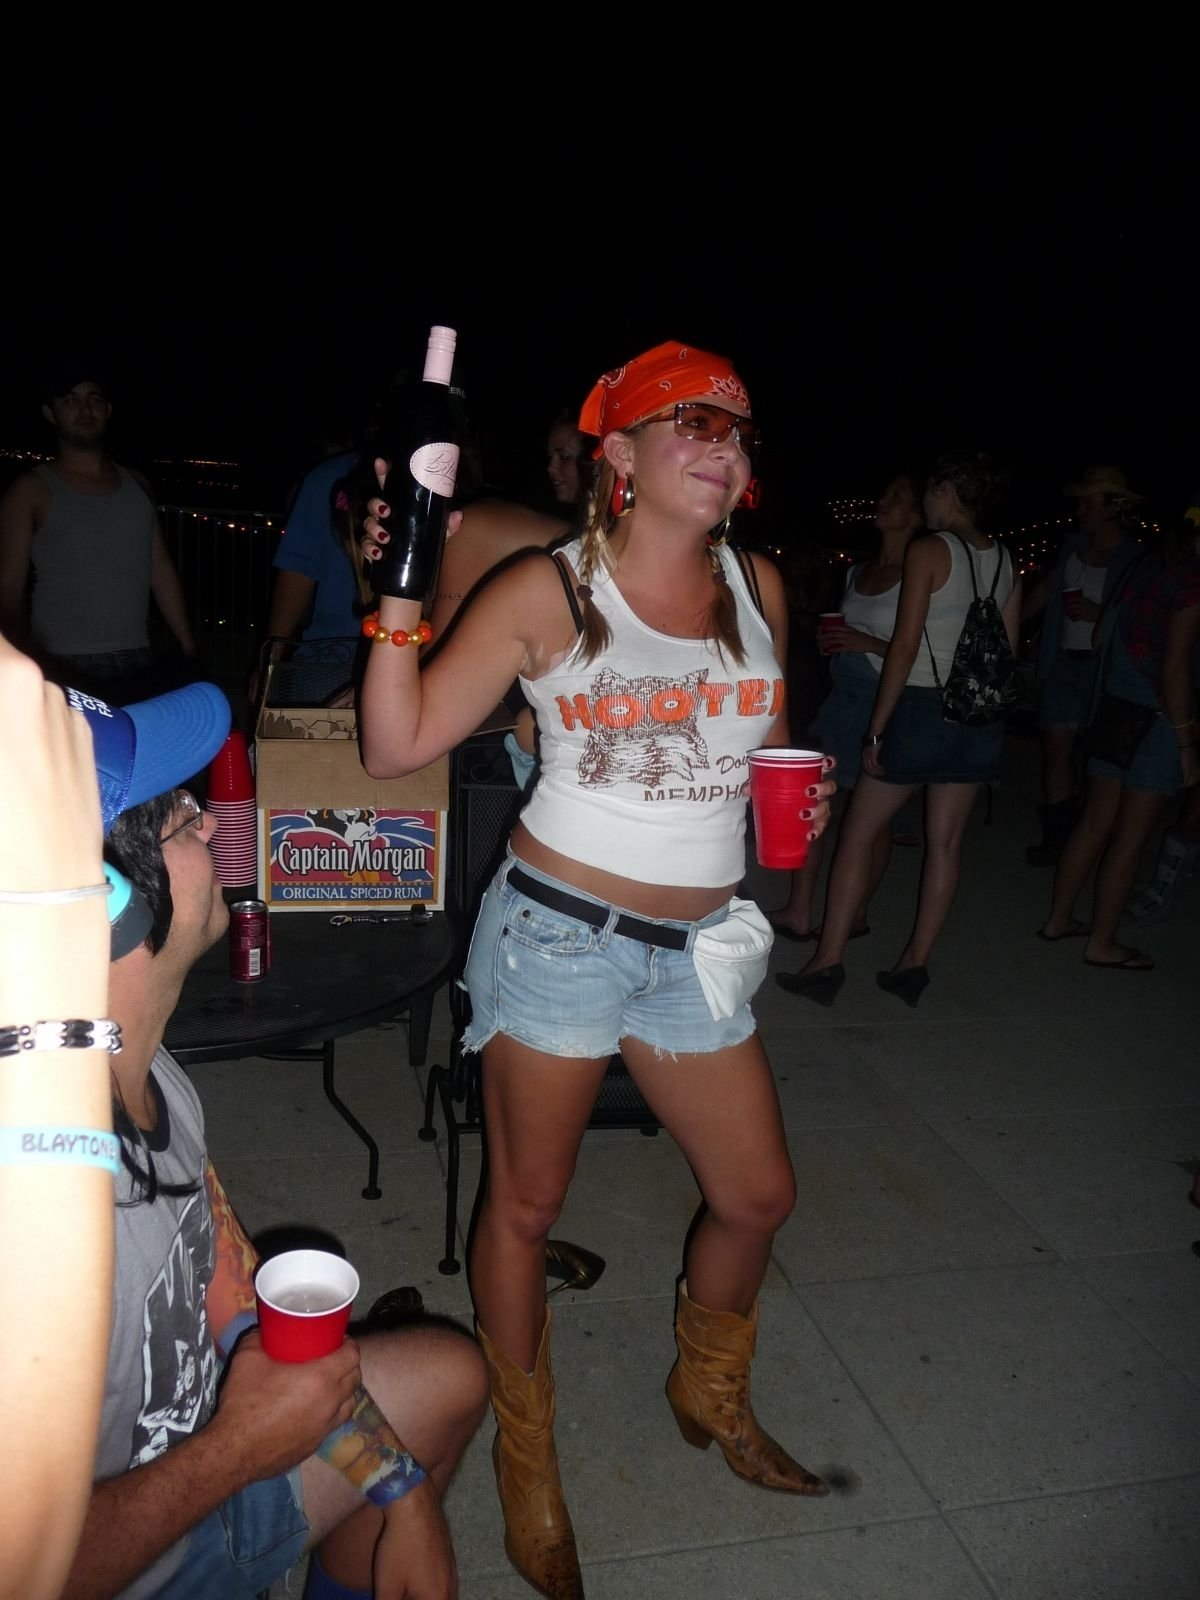 10 Stylish White Trash Costume Ideas For Women white trash bash i love playing dress up pinterest white trash 2020